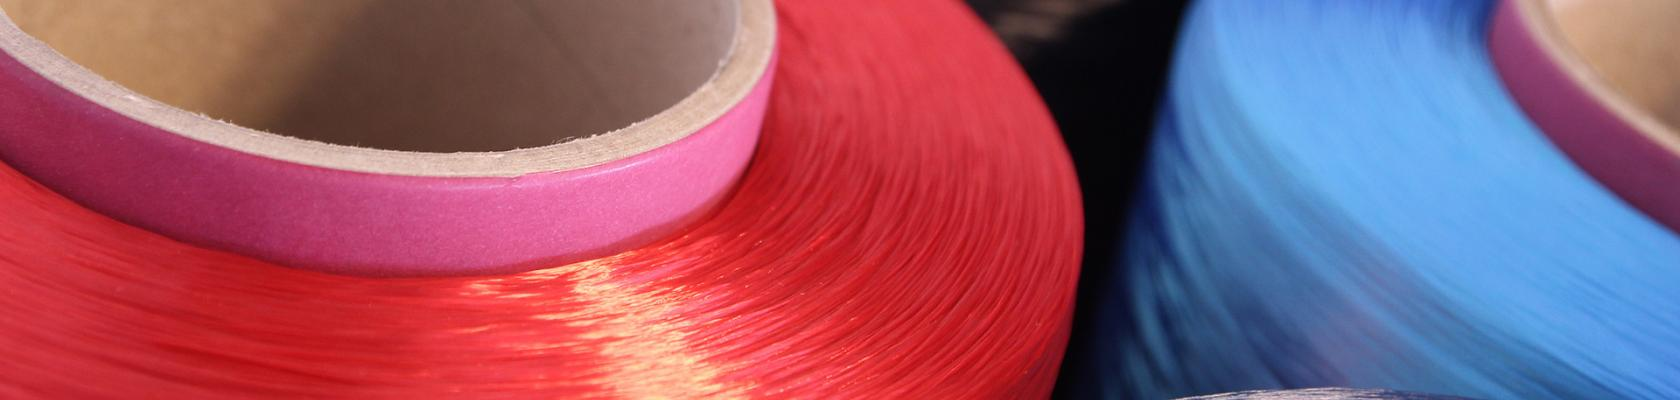 rpet colored industrial yarns